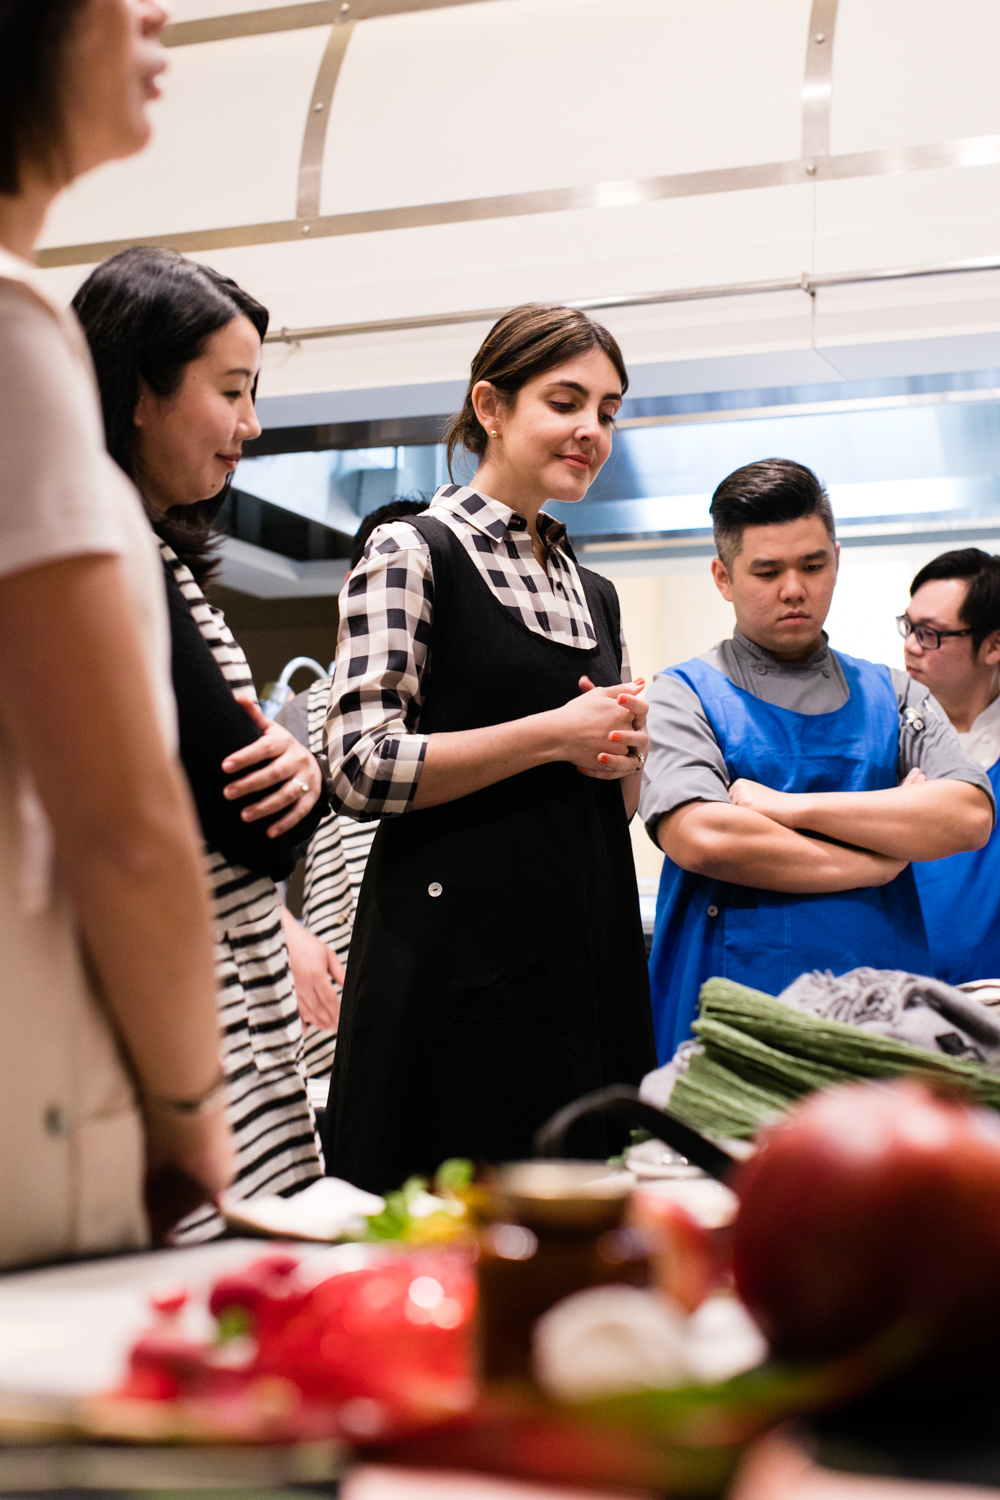 Food styling workshop by Mariana Velasquez | Hong Kong and Macao